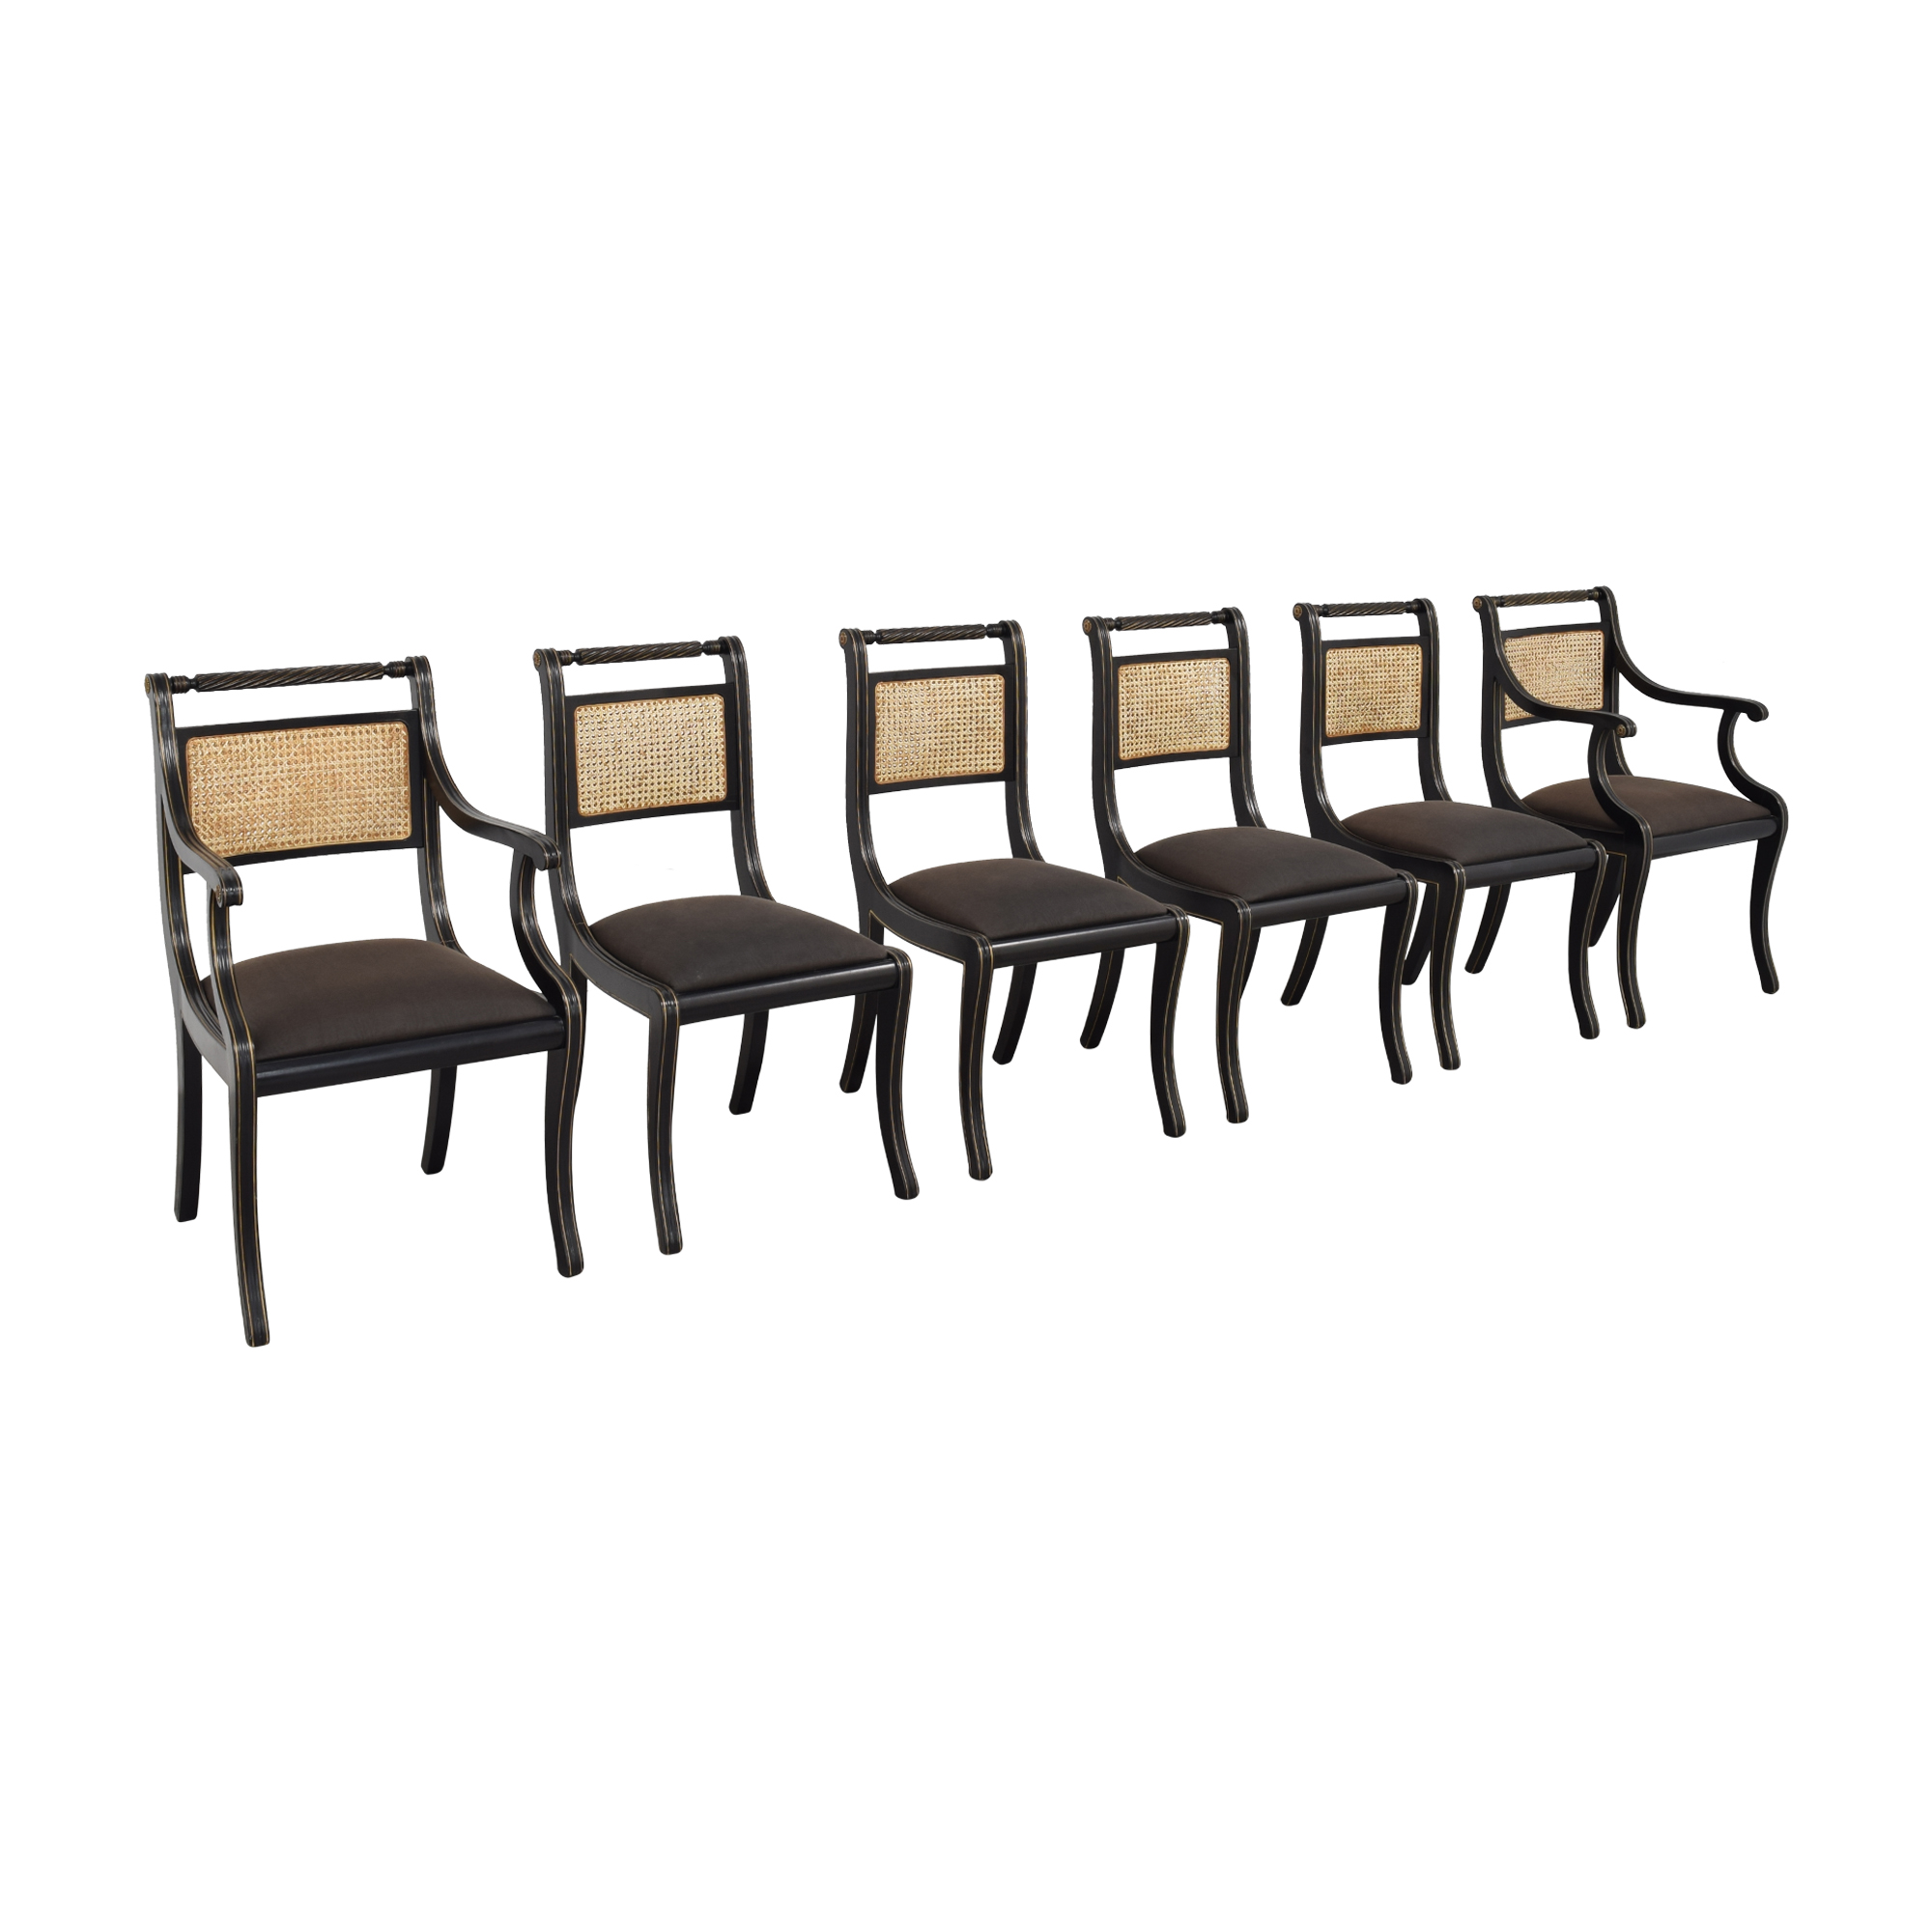 Bloomingdale's Bloomingdale's Italian Cane Back Dining Chairs used